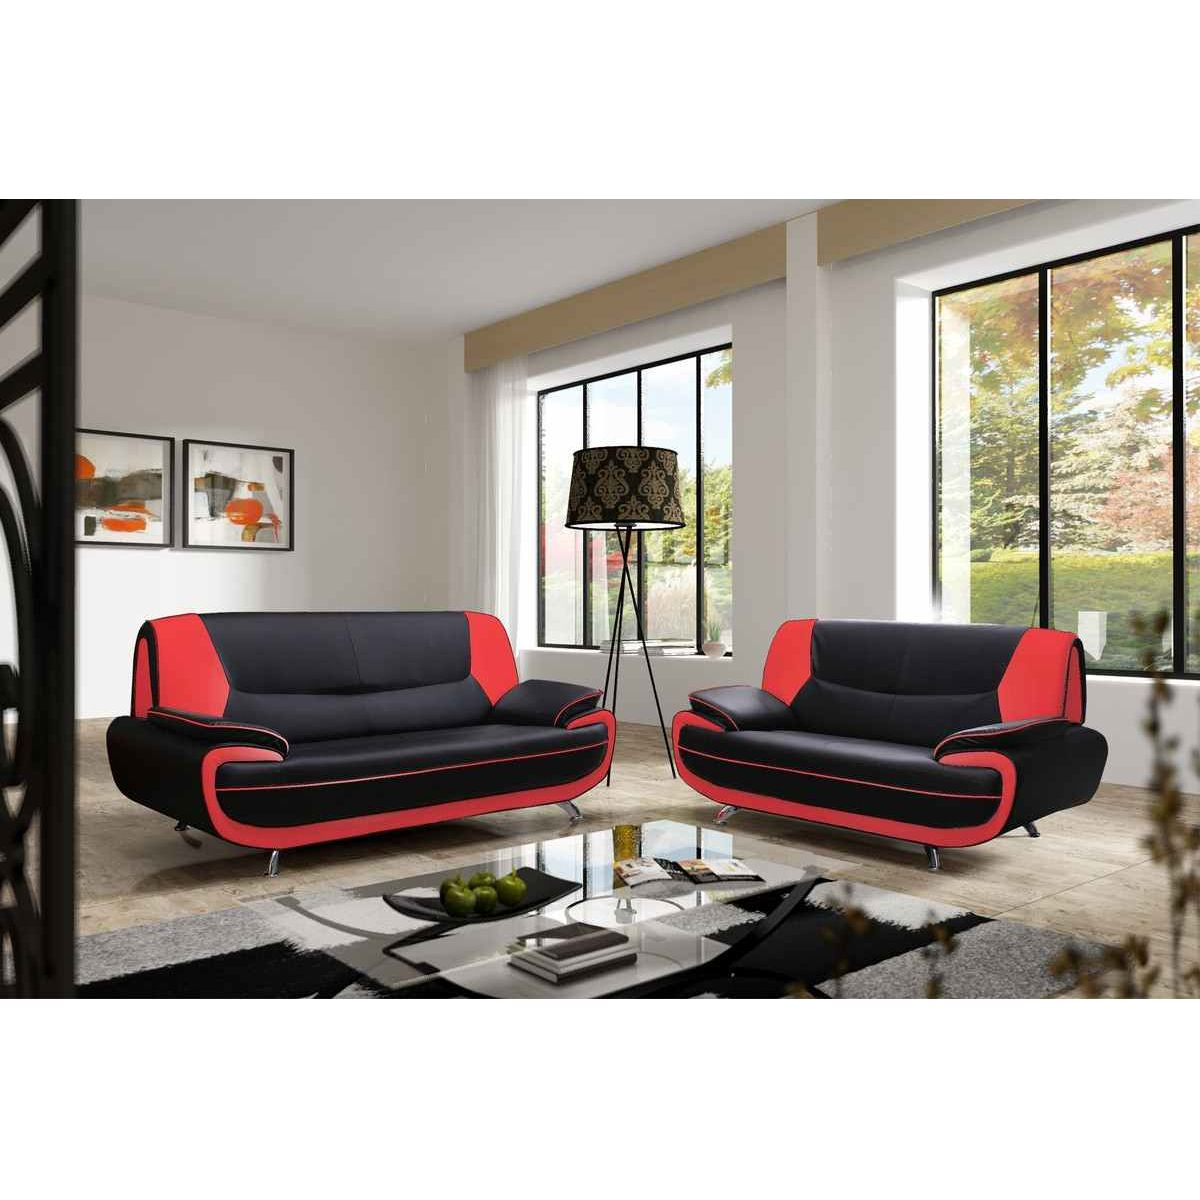 Lit Sommier 160 X 200 Deco In Paris - Canape 3 2 Places Noir Et Rouge Marita